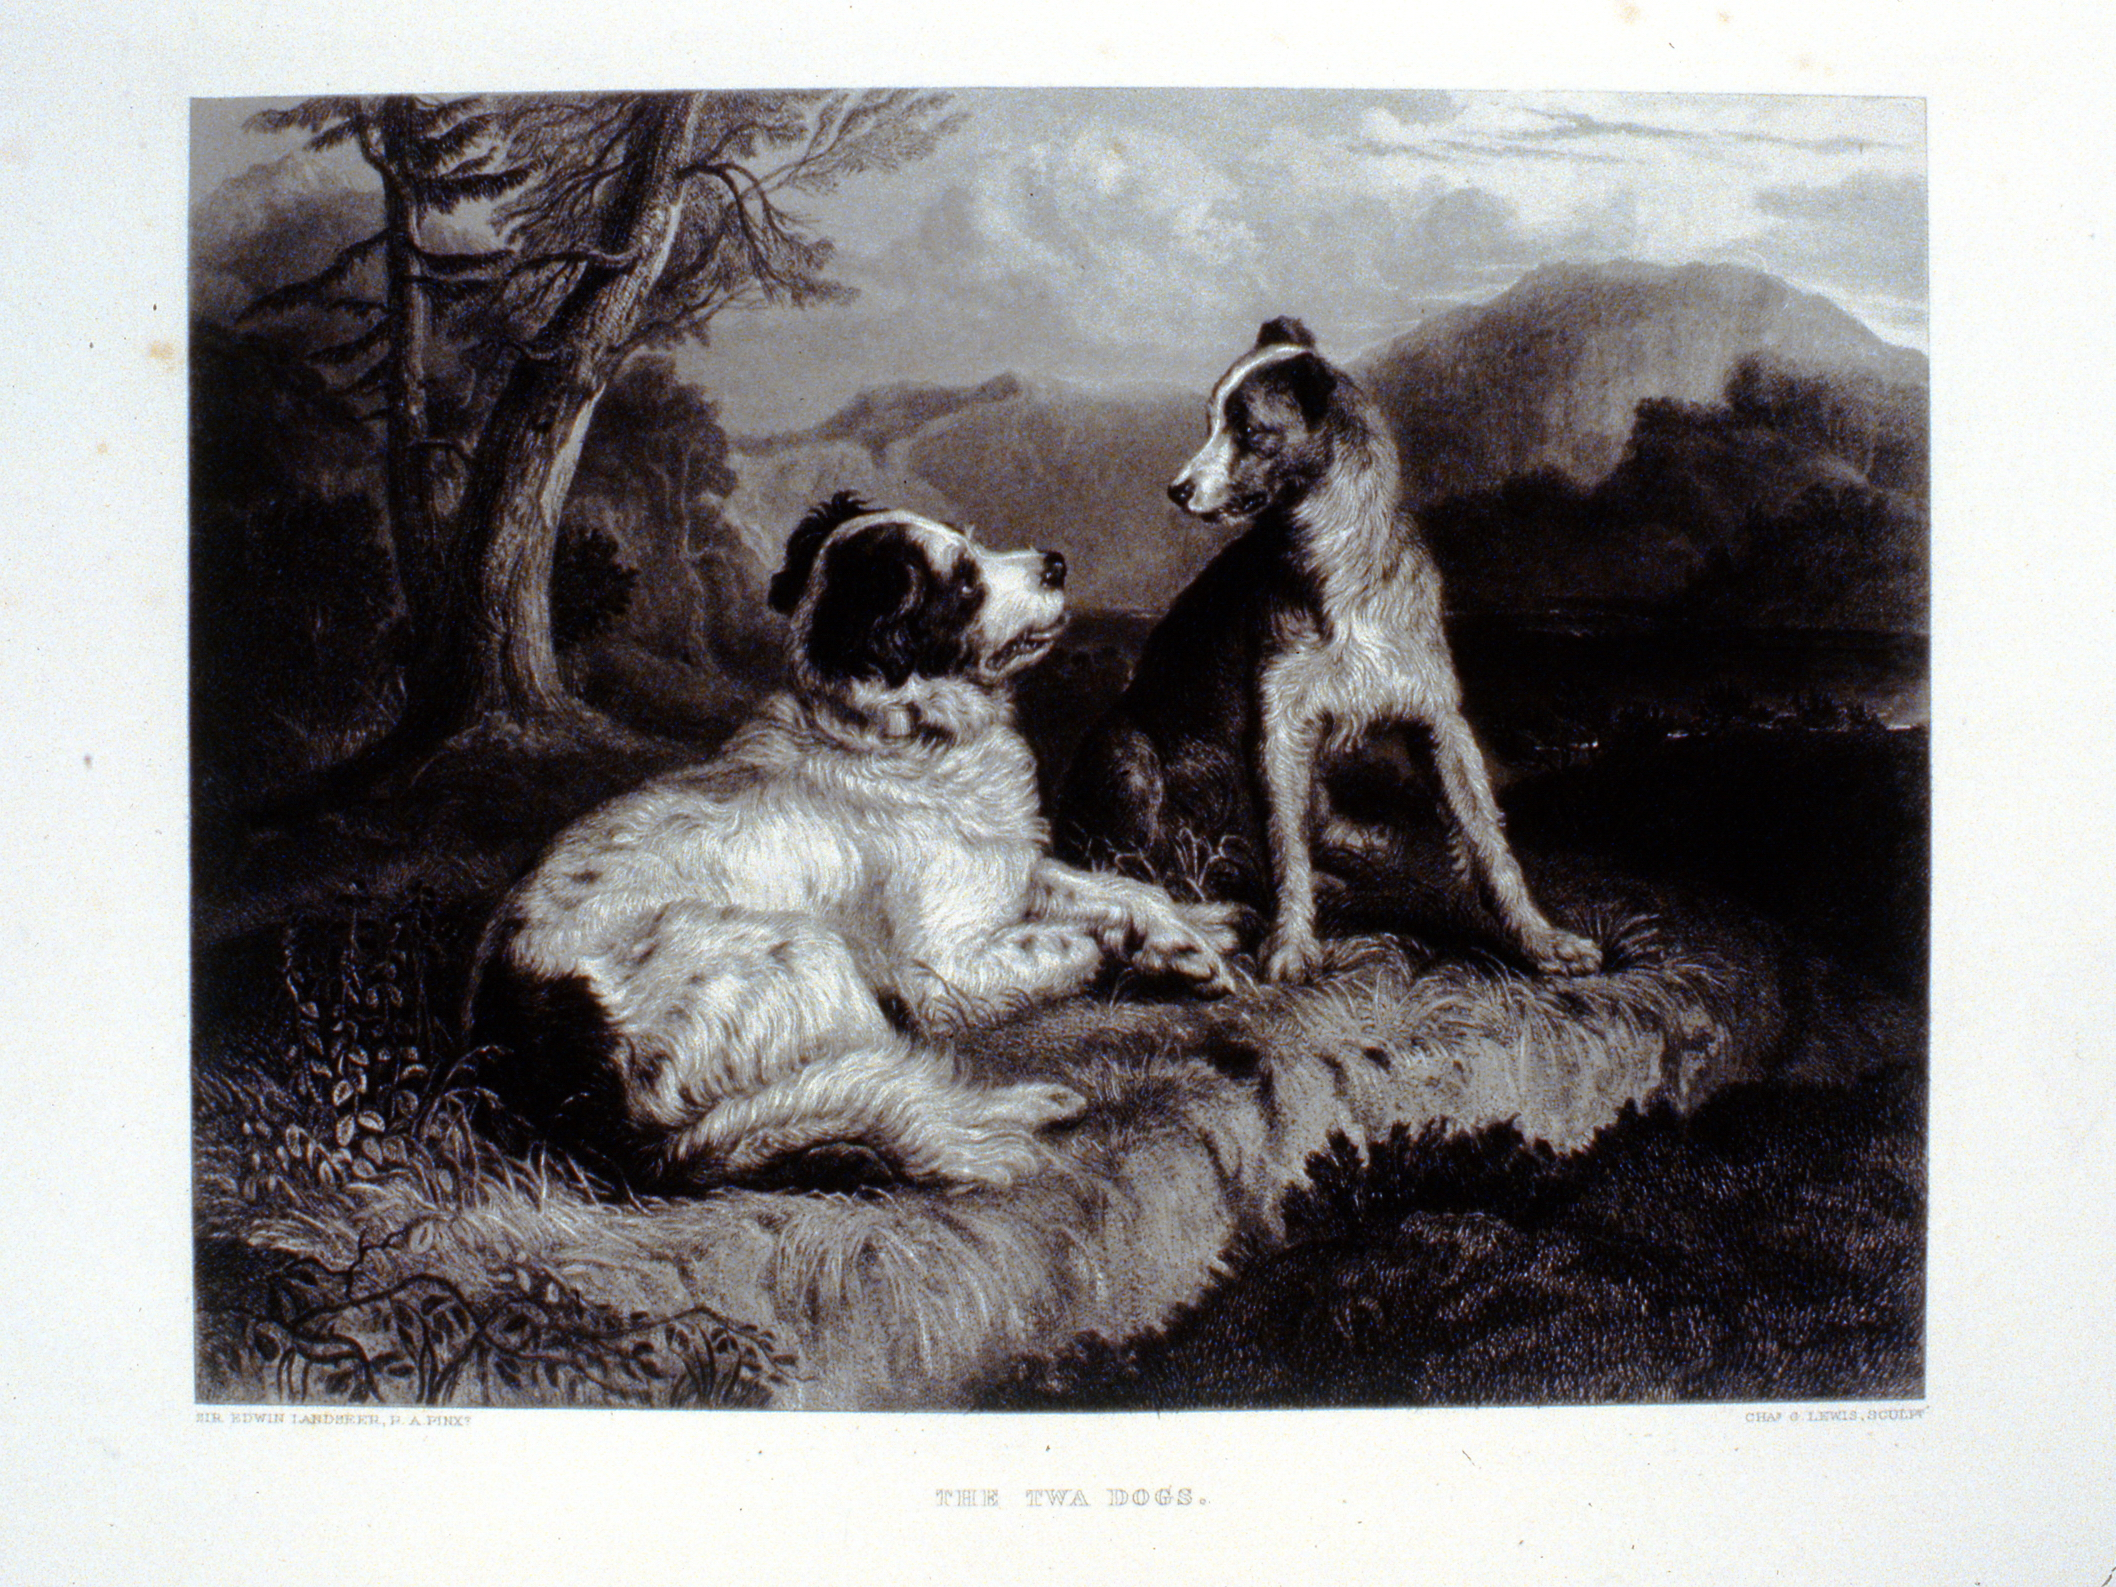 The Two Dogs , c. late 19th Century, Charles G. Lewis, steel engraving, 20.5 cm x 27.4 cm, 1996.08.27, gift of Yvonne Adams